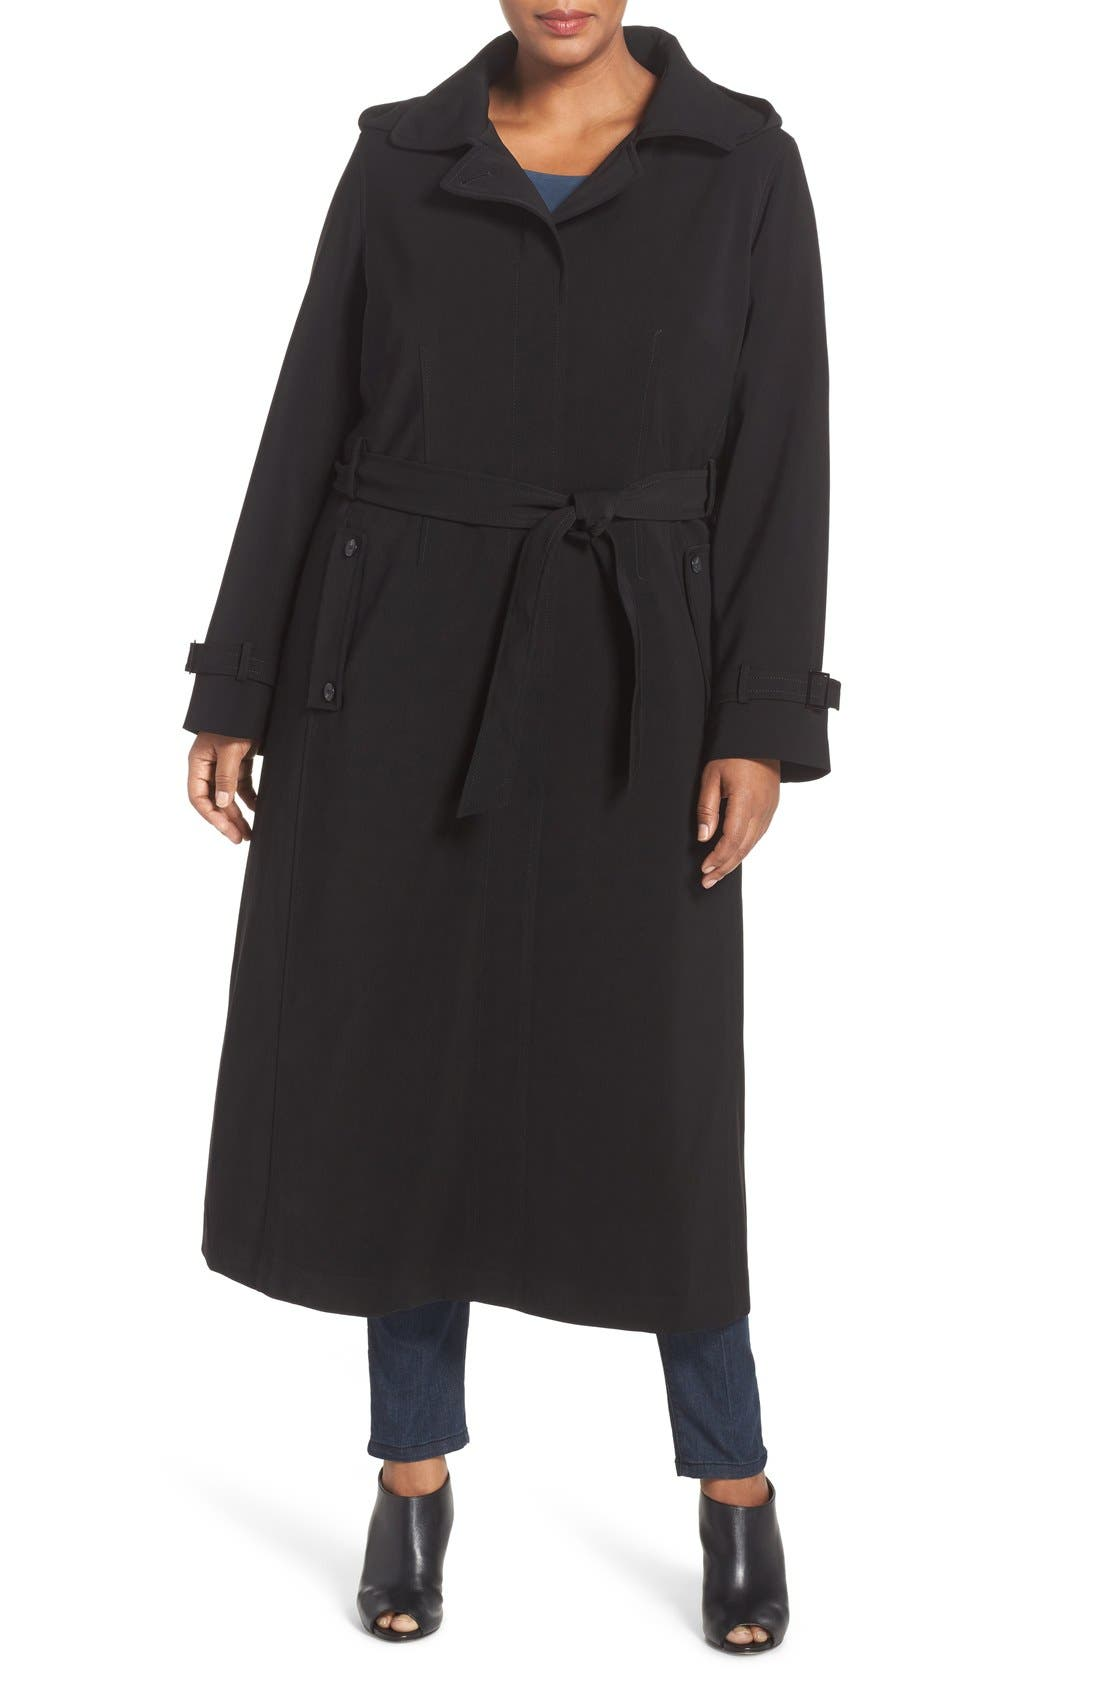 Main Image - Gallery Long Nepage Raincoat with Detachable Hood & Liner (Plus Size)